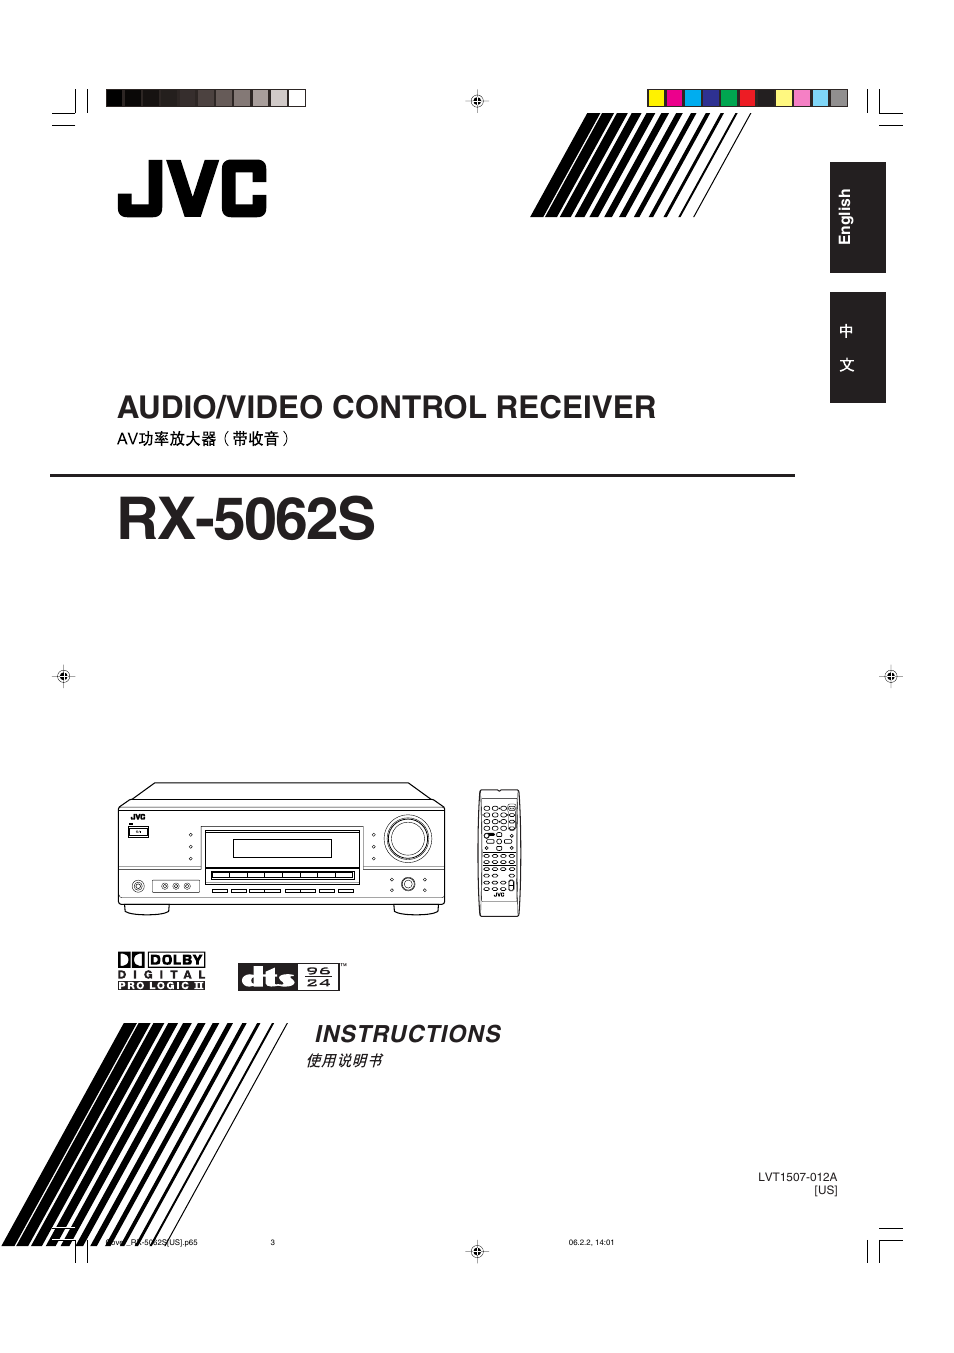 jvc rx 5062s user manual 35 pages also for lvt1507 012a panasonic surround sound installation panasonic surround sound installation